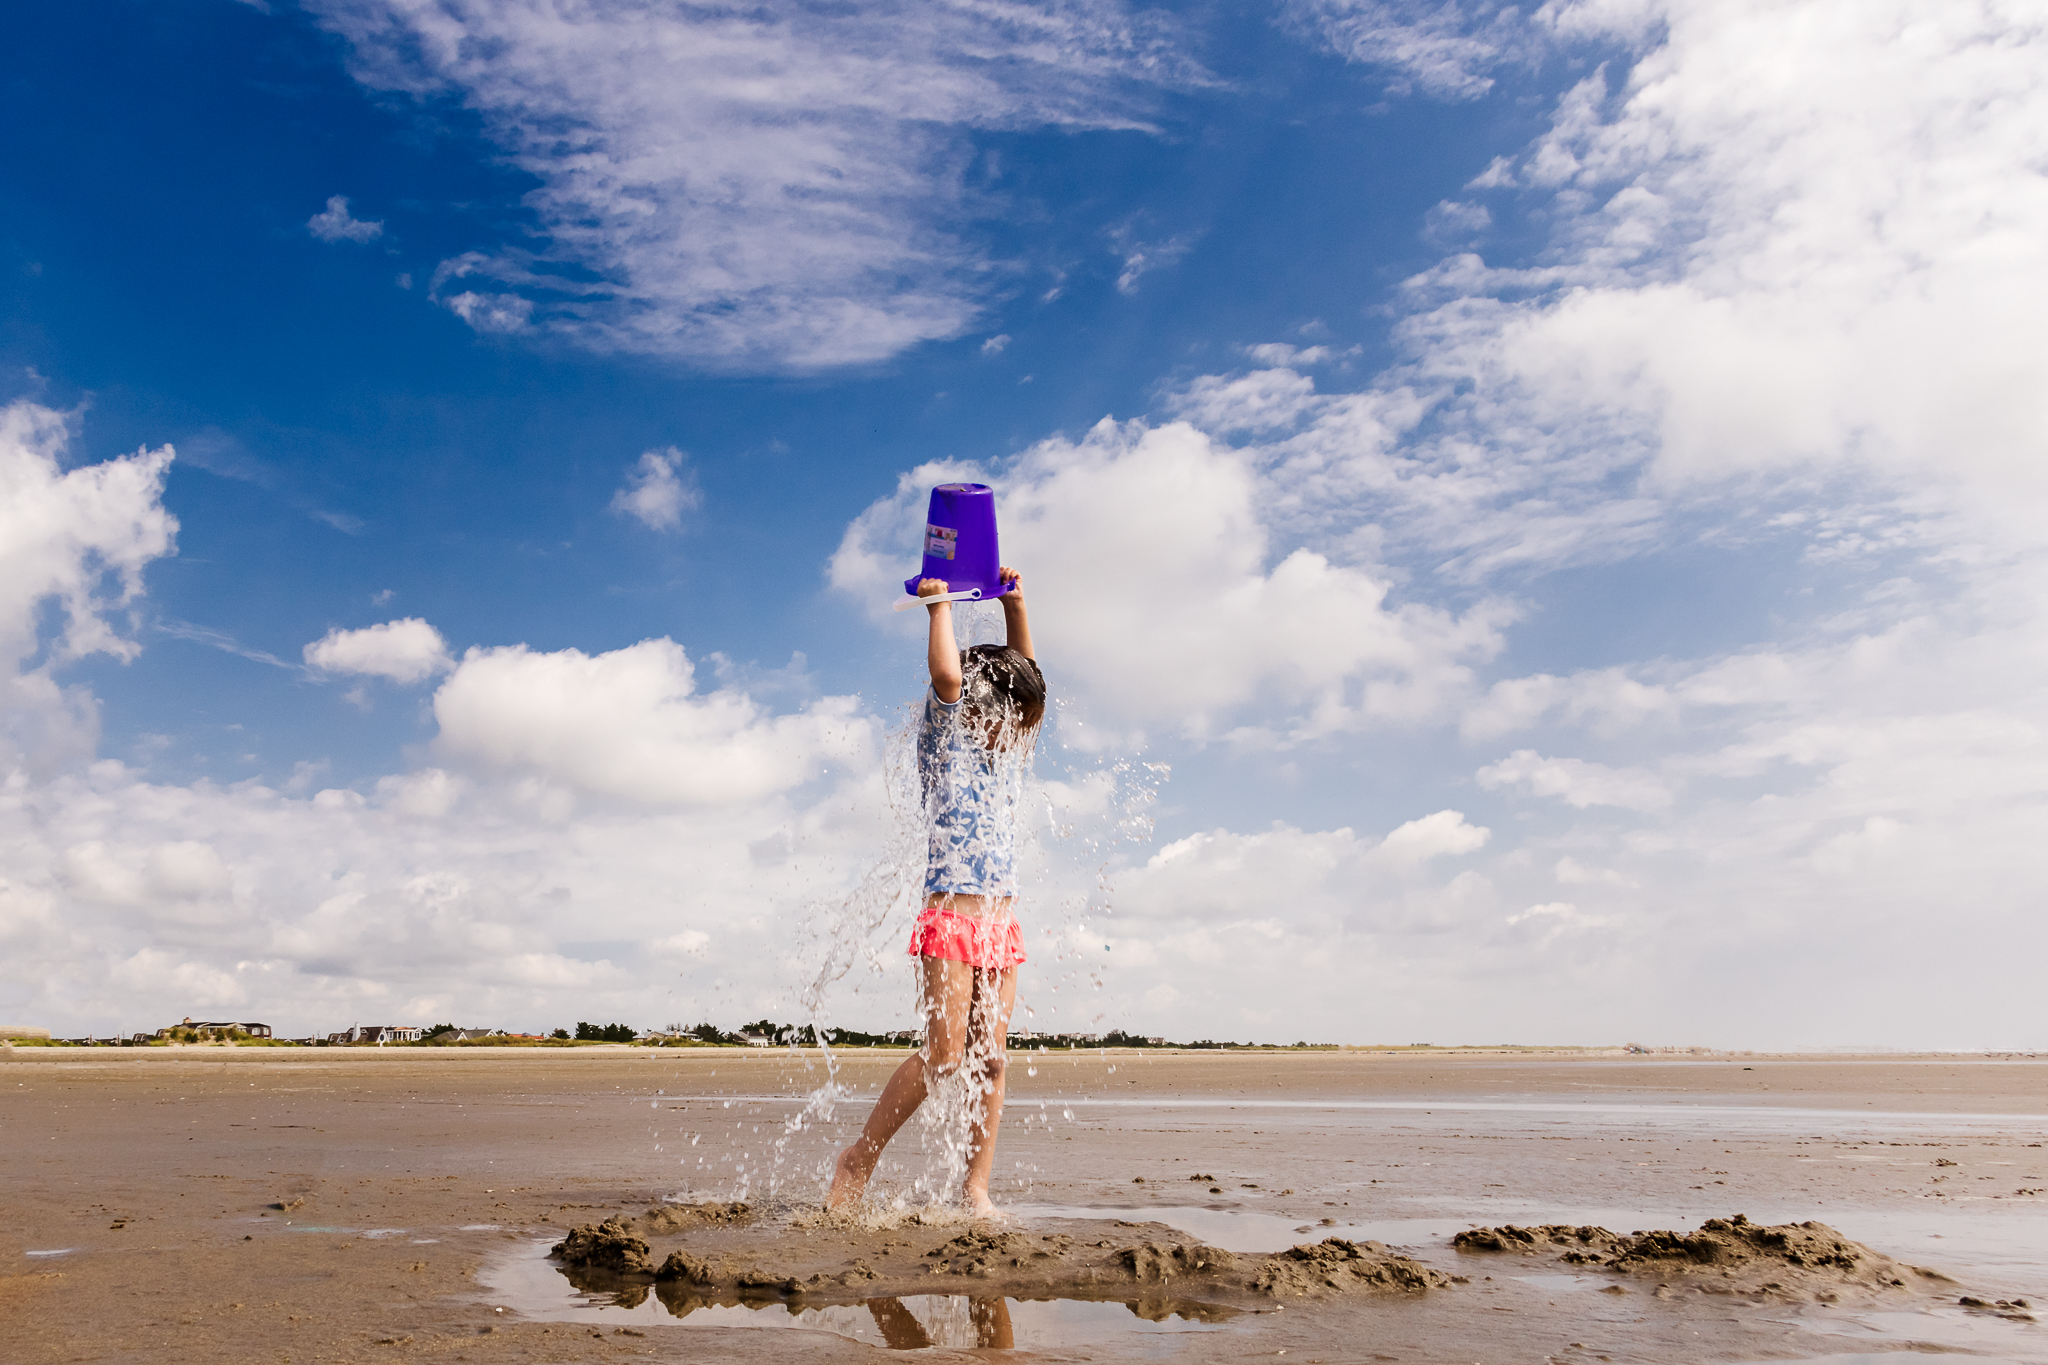 New Jersey Beach Photographer, Documentary Beach Photography, Girl Dumping Water on Head Clouds in Blue Sky